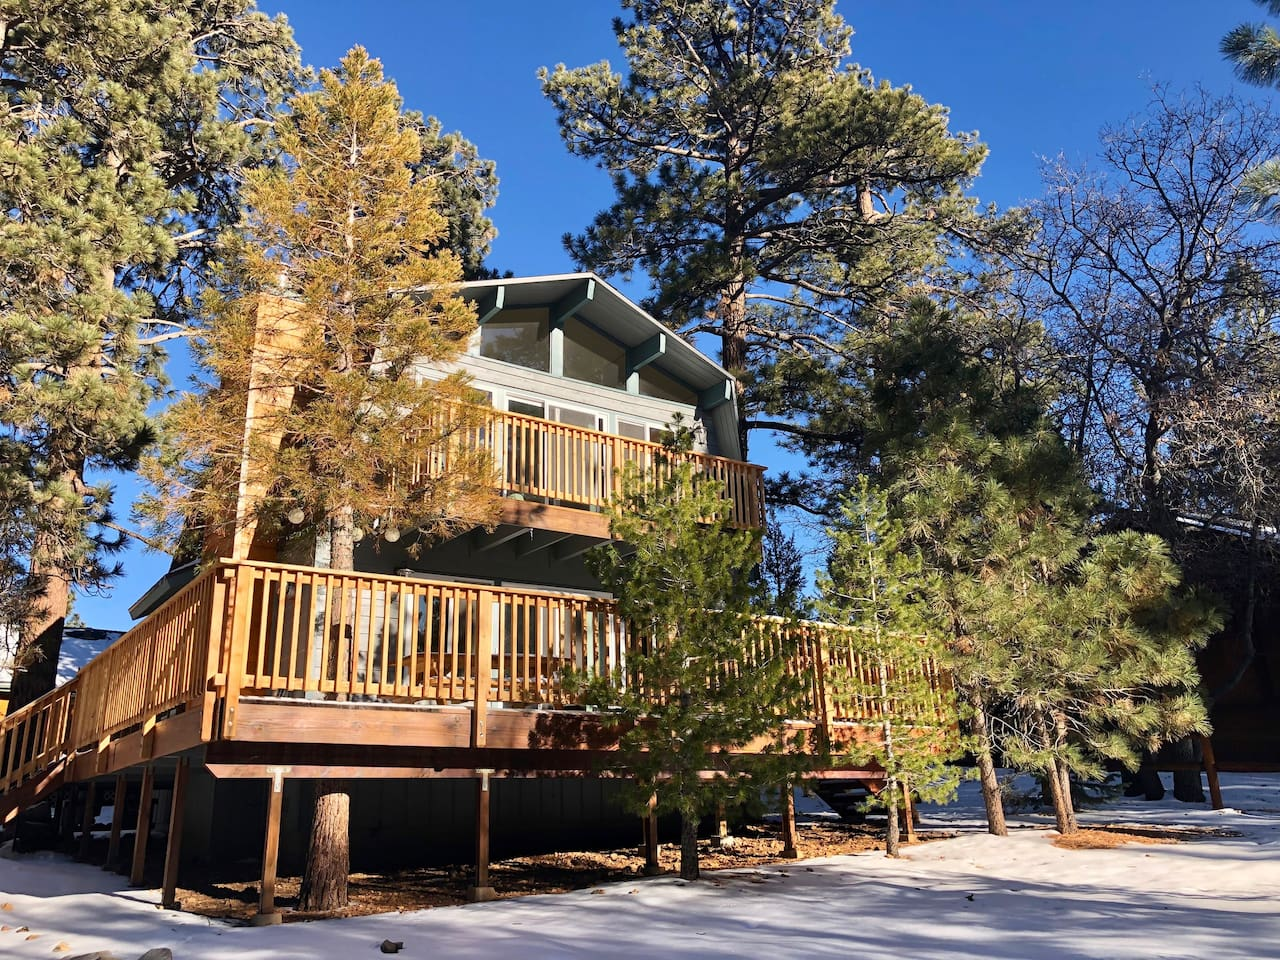 """The view of the cabin from the flat, level driveway. """"It was the best Airbnb I have ever been to!"""" - Nadia, guest"""